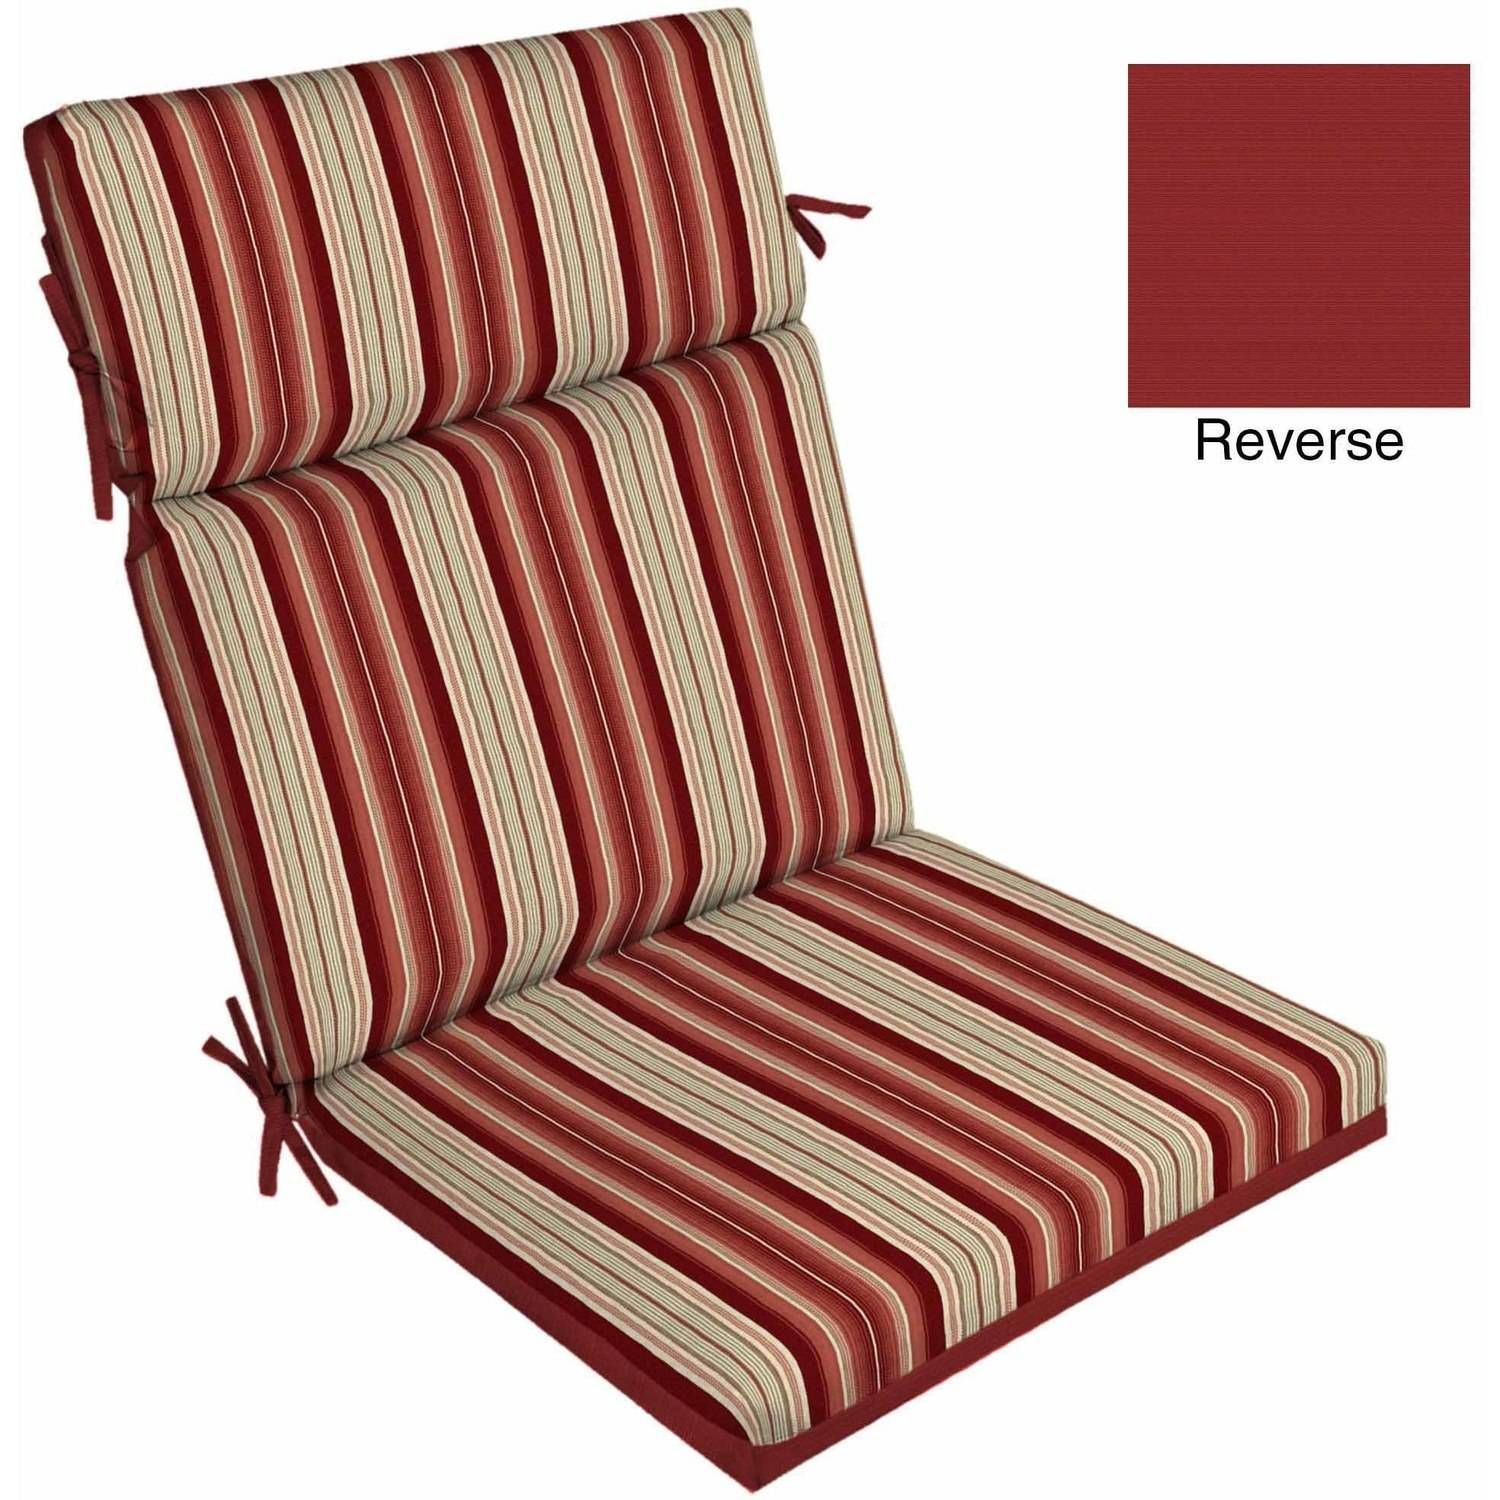 Lawn Furniture Cushions, Patio Furniture Cushions, Outdoor Chair Cushions, Lawn  Chairs, Outdoor